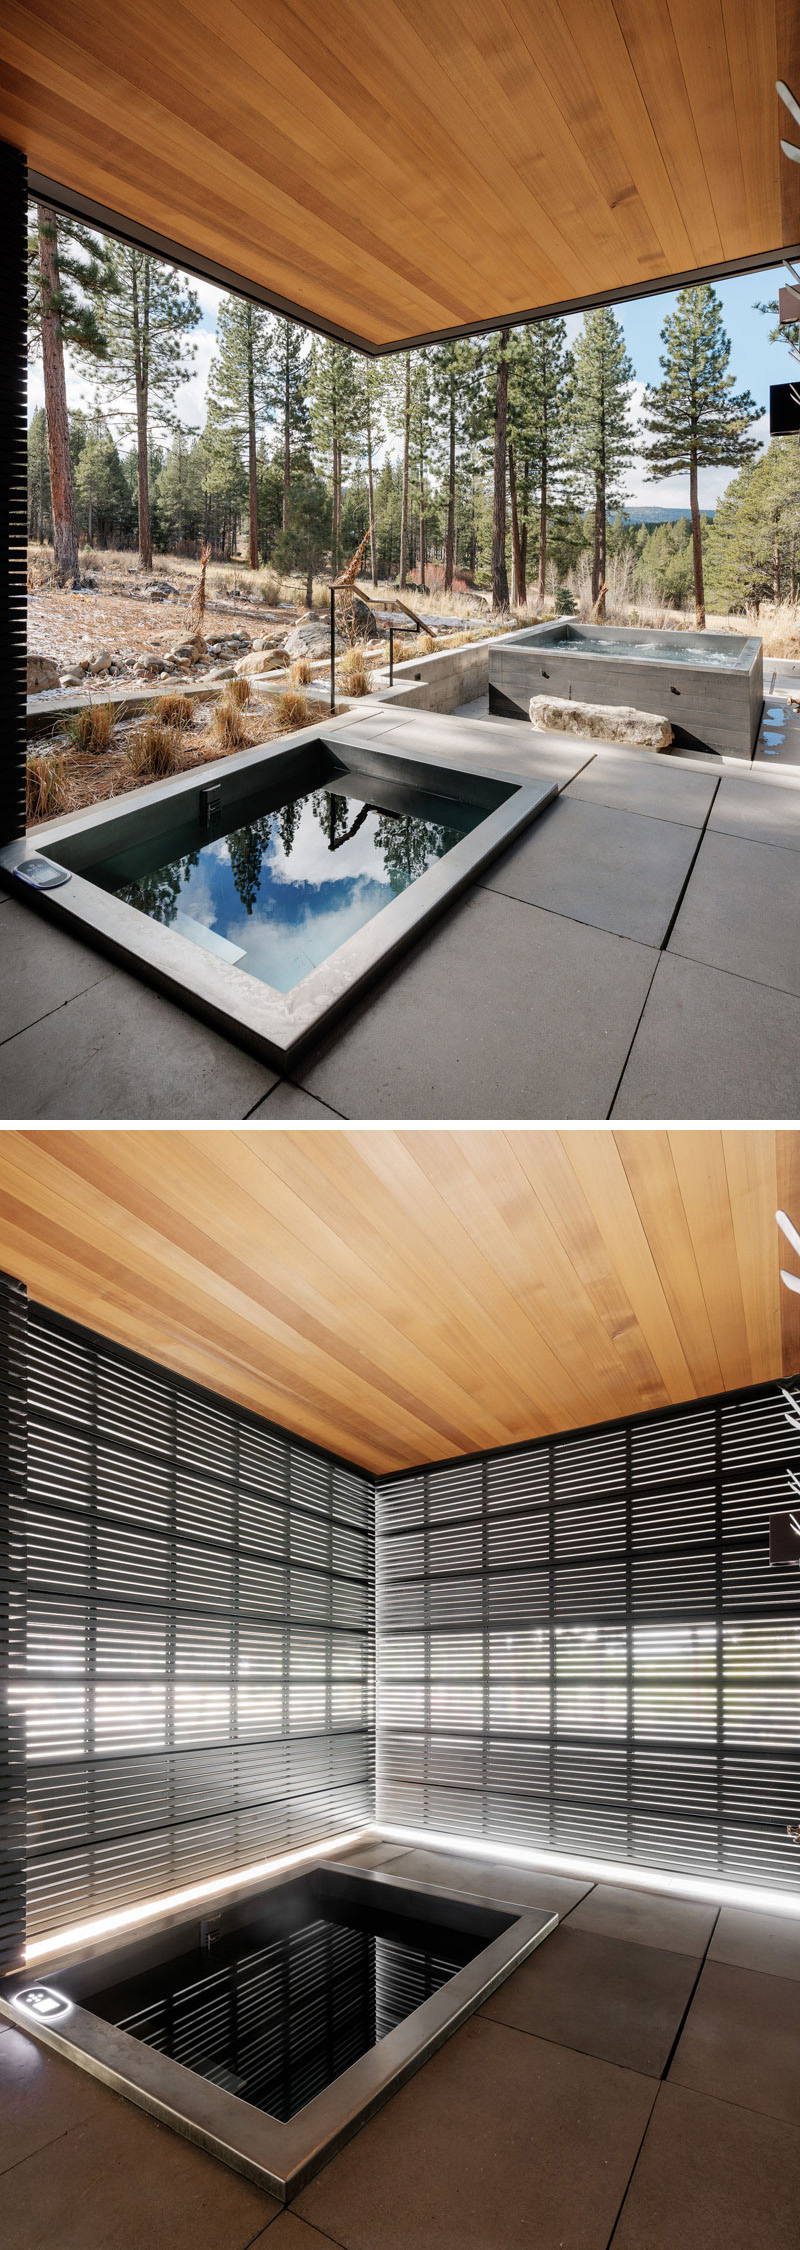 This modern house has an outdoor soaking tub that has a black metal privacy when needed.